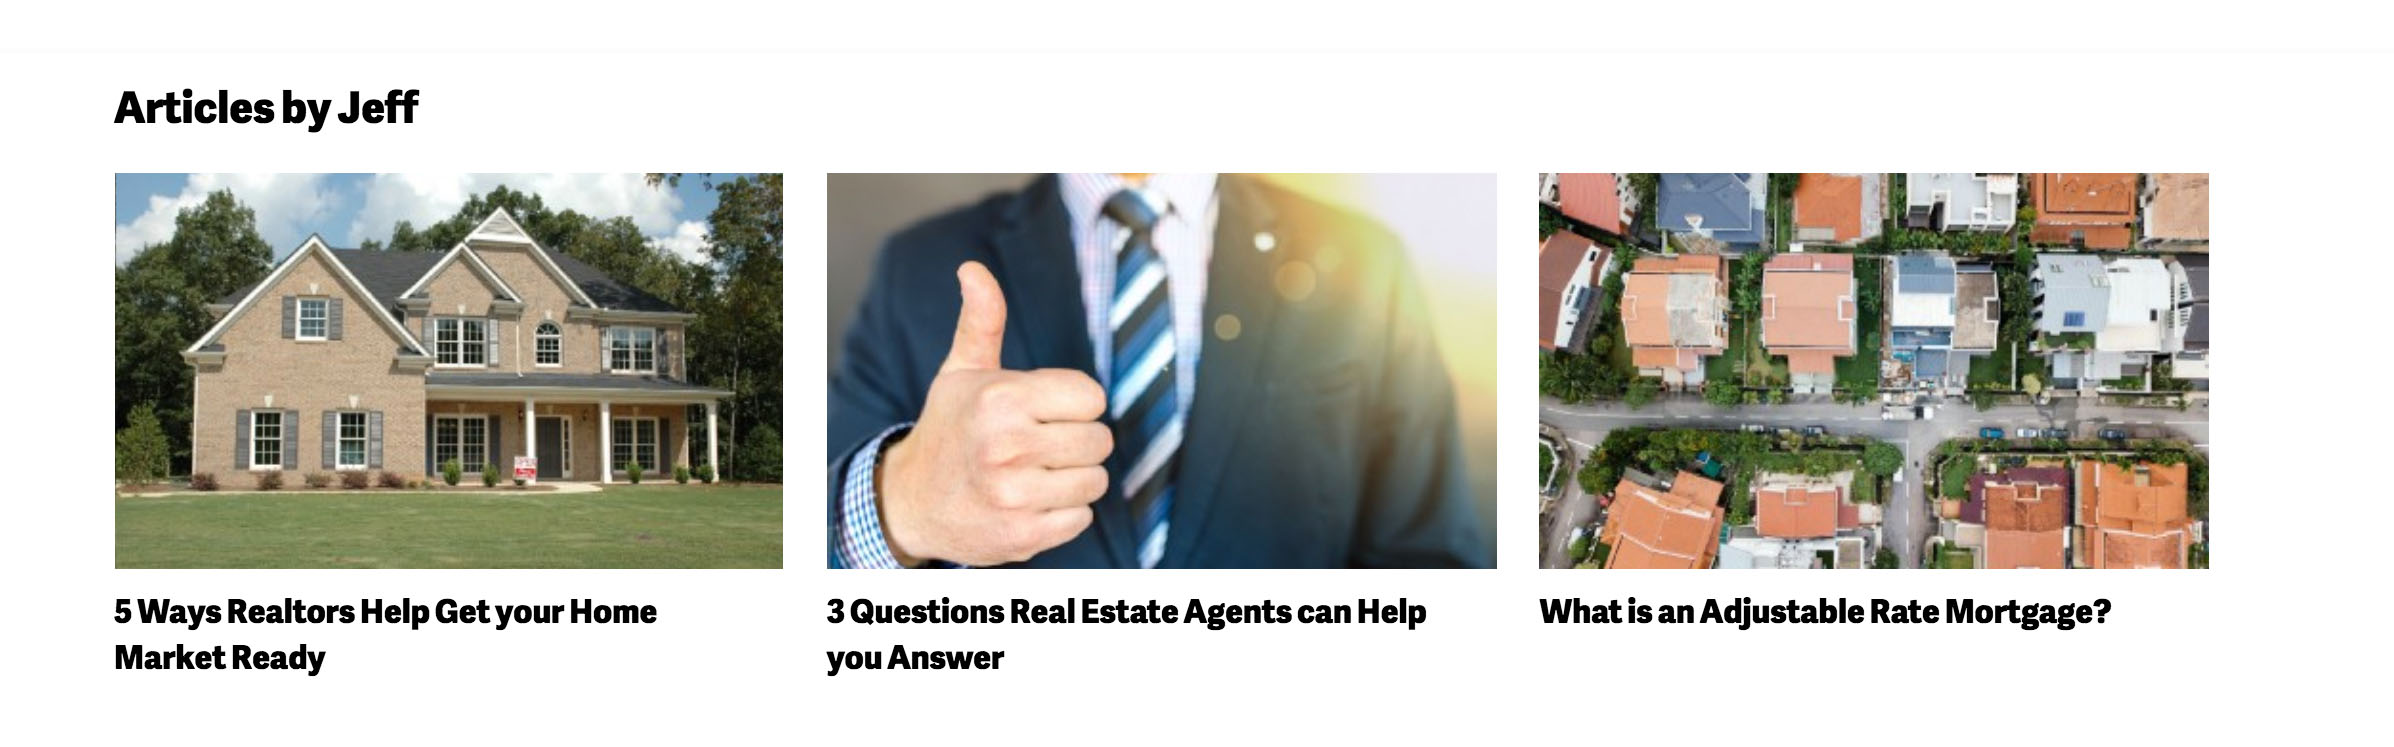 Agent articles on PropertySimple